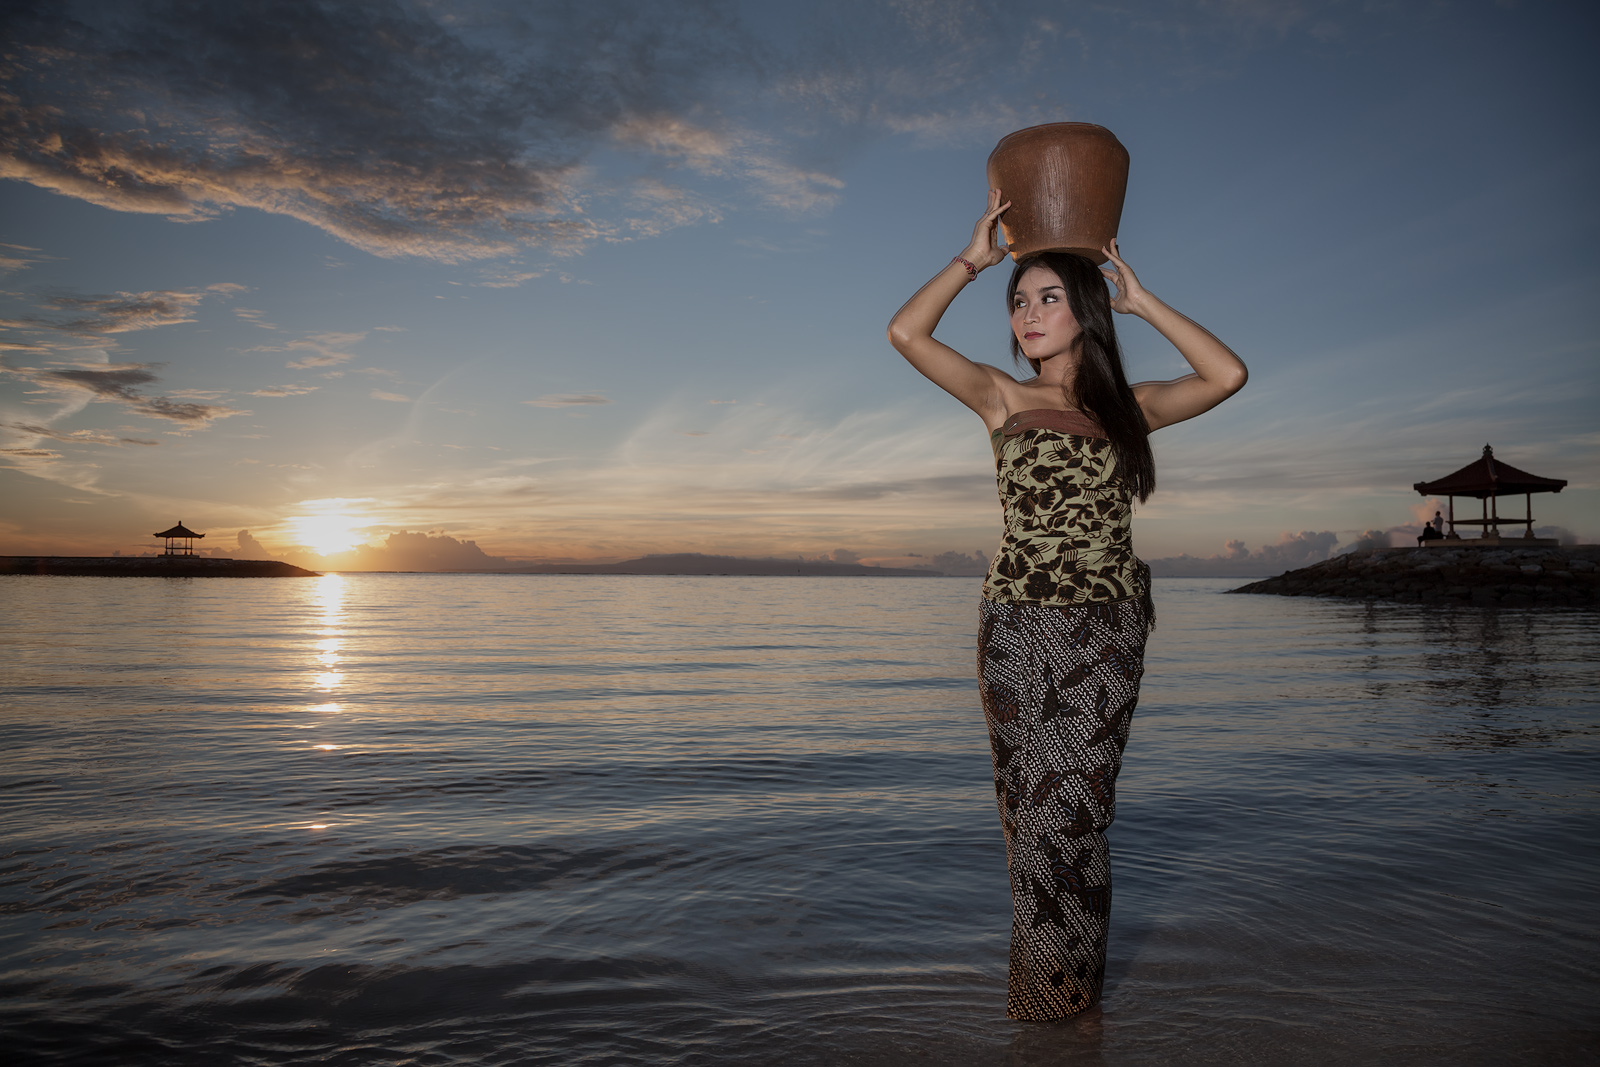 asia,asian,bali,east java,female,girl,indonesia,indonesian,java,lady,lake,mega,names,sanur beach,water body,young, photo